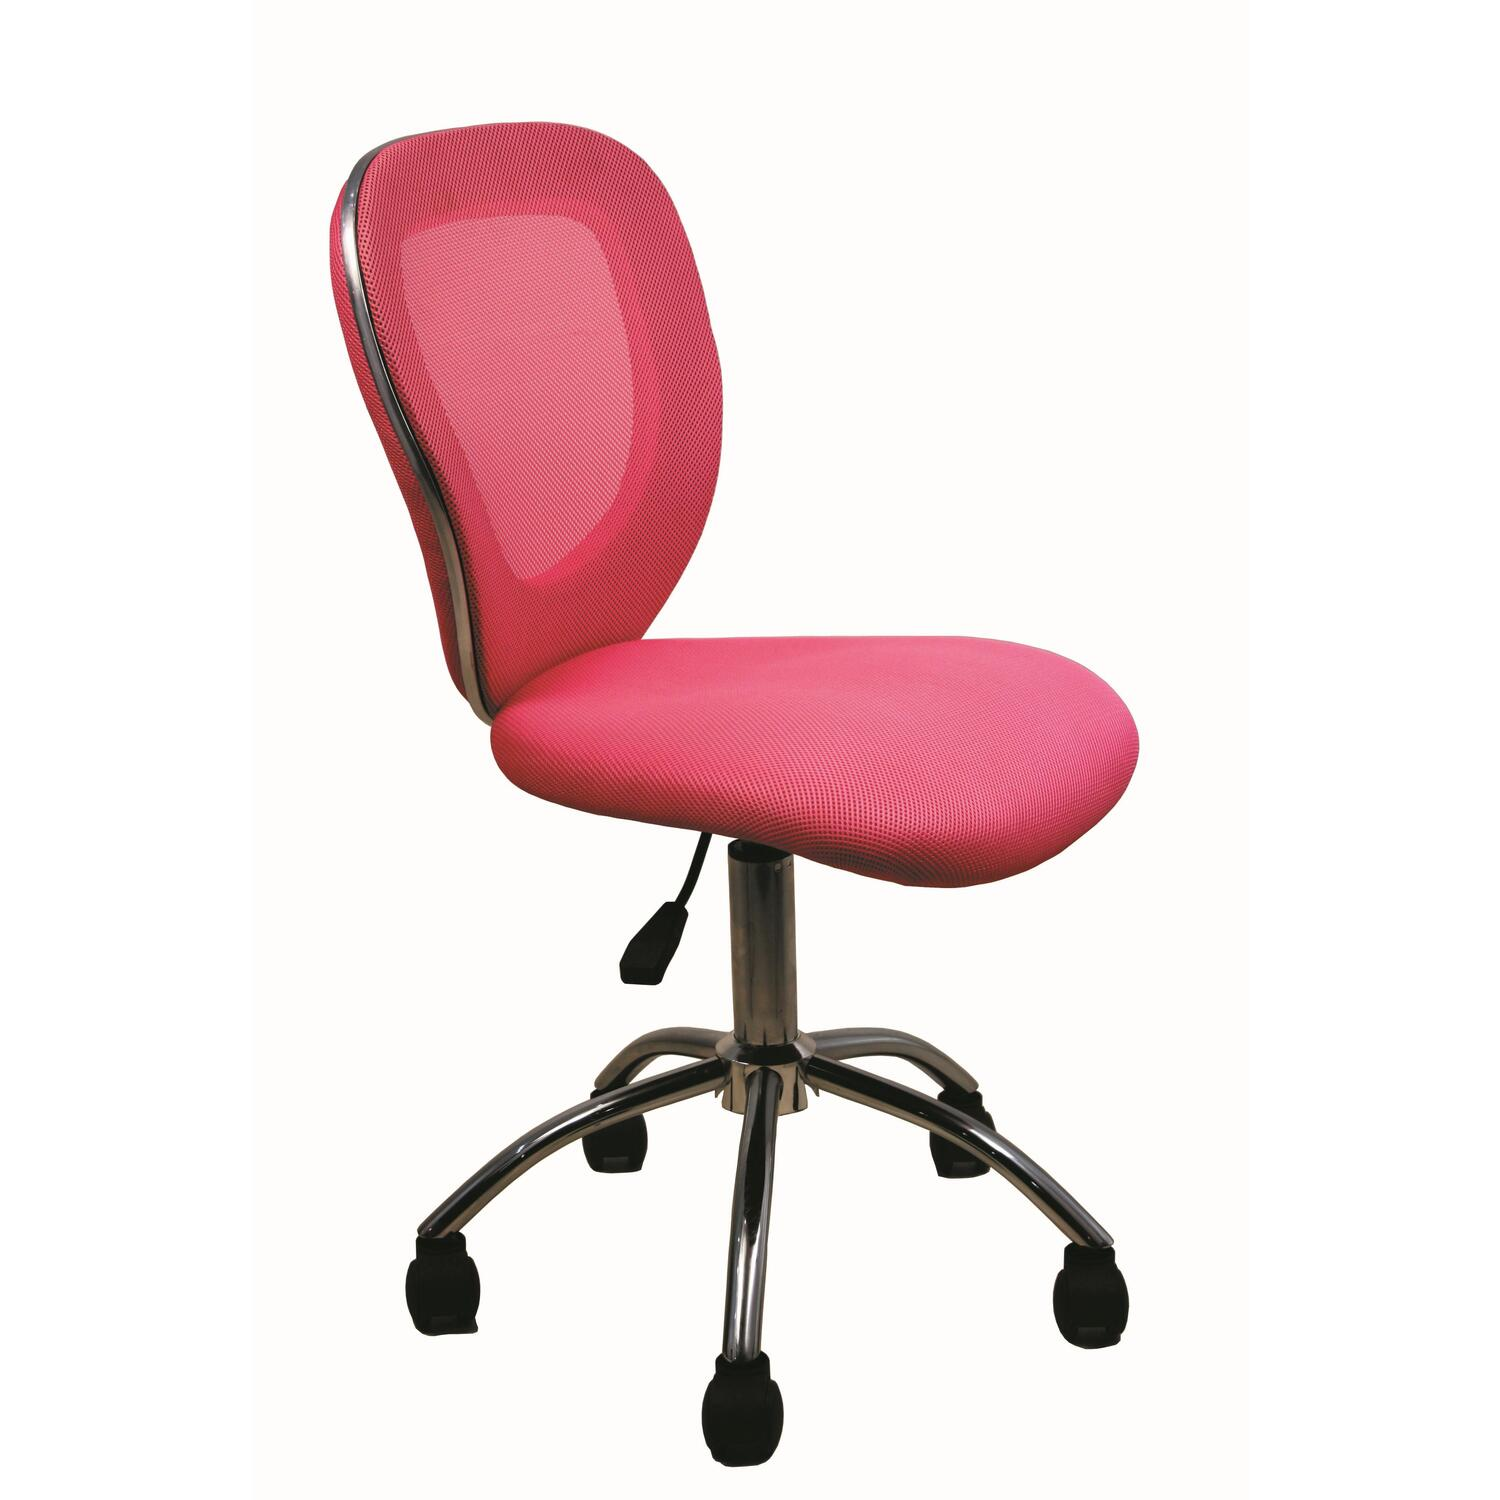 sex chairs suppliers high chair for baby girl techni mobili kids task by oj commerce 92 99 95 04